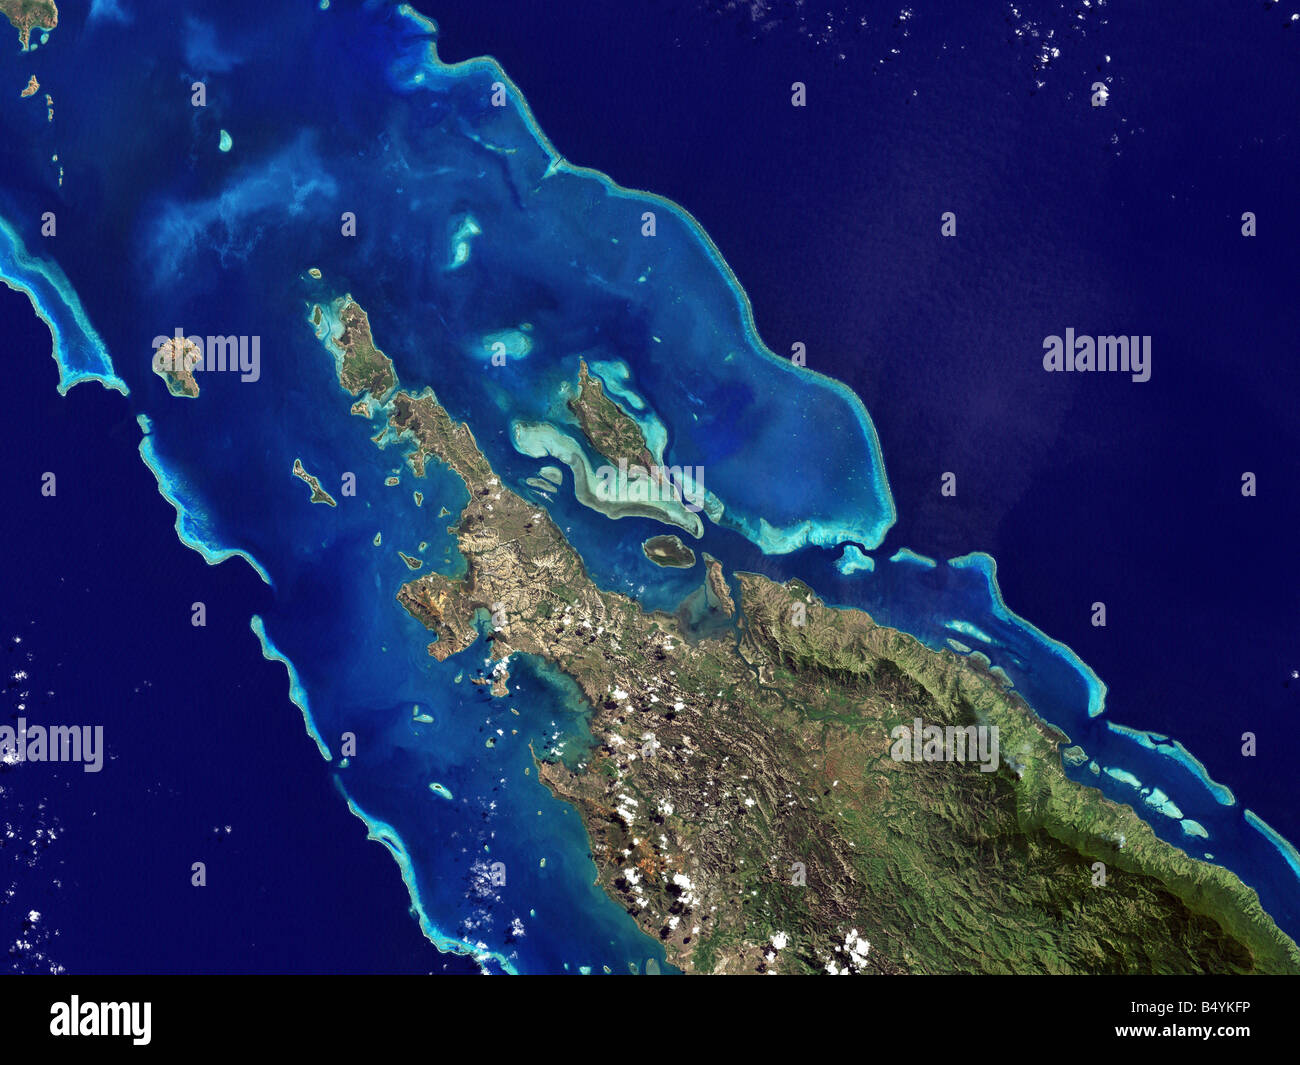 Lagoons and Coral Reefs of New Caledonia - Stock Image